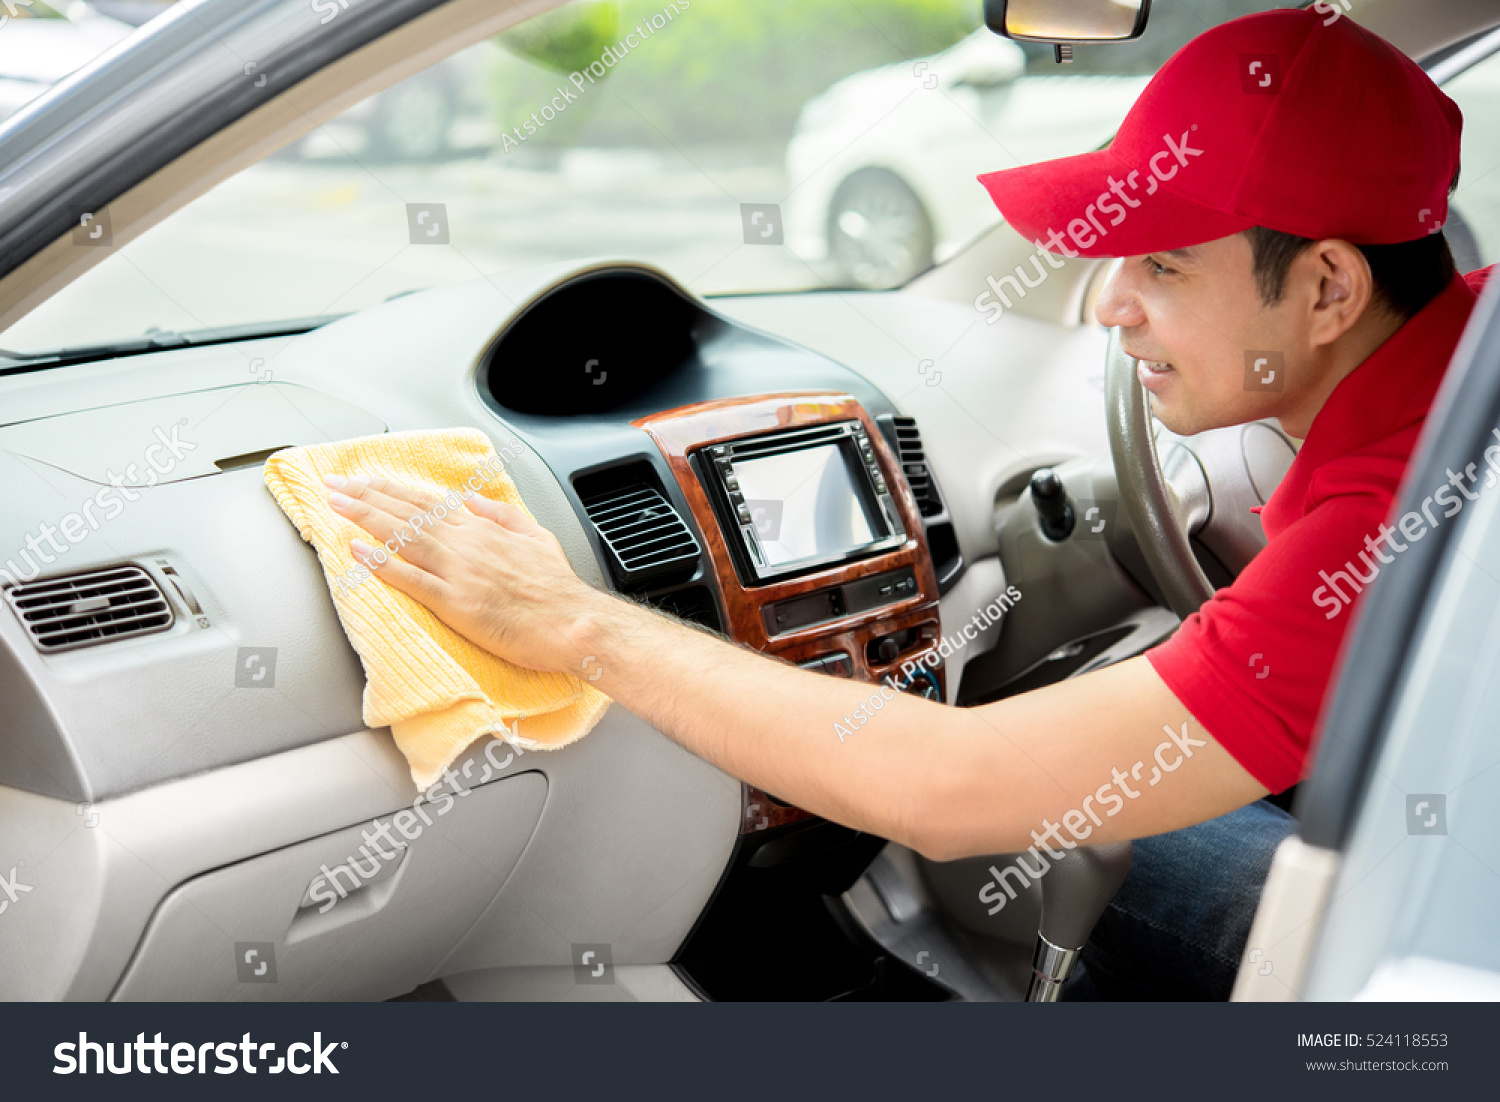 at gta washing listings expert white our auto king glove automotive detailing interior